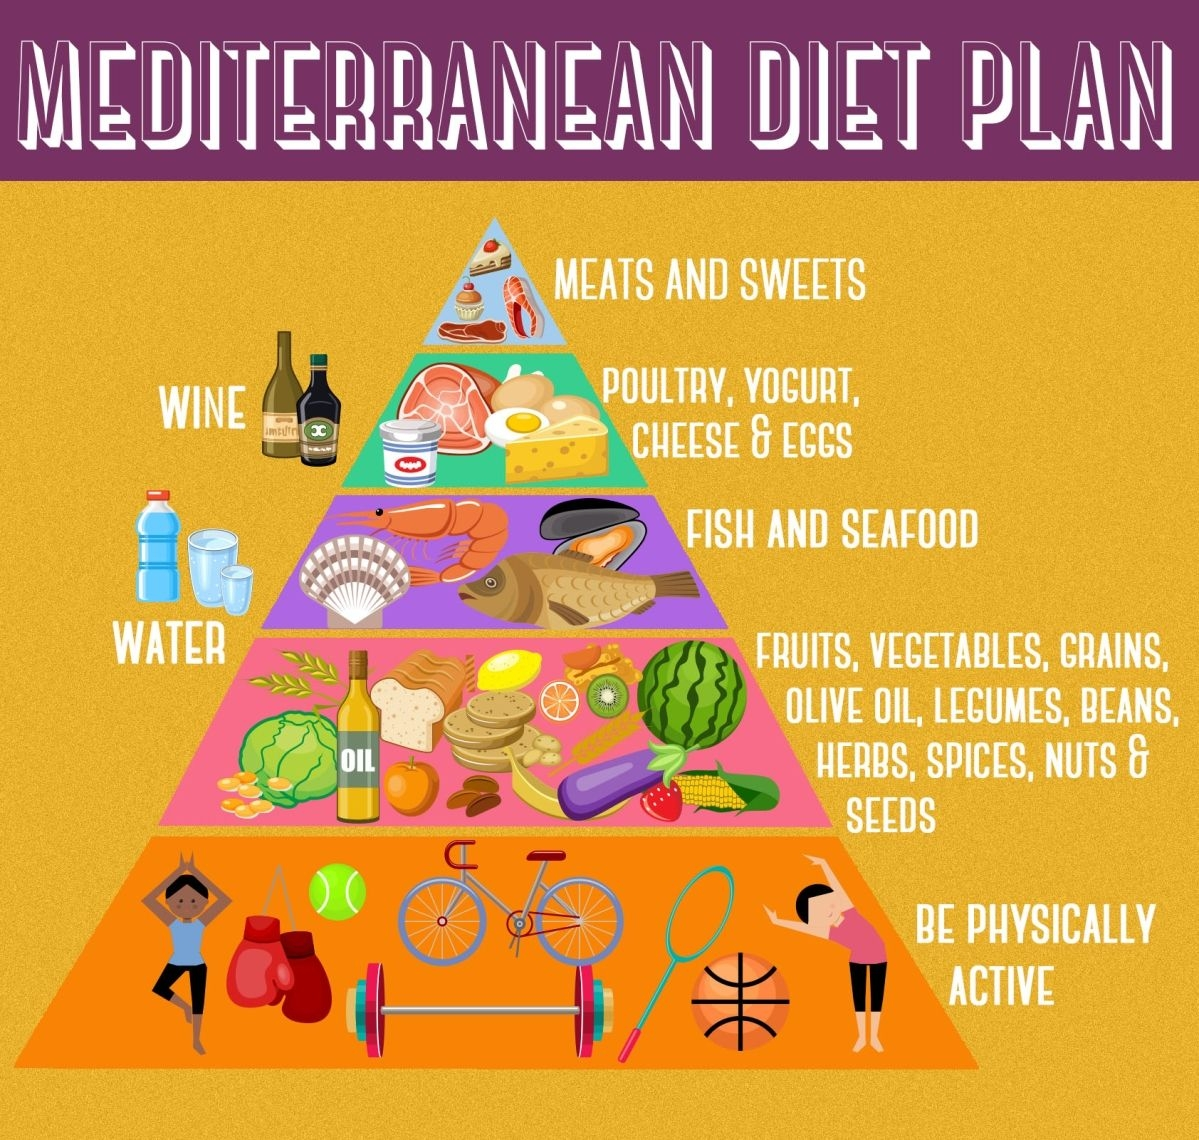 Mediterranean Diet Named Best Diet for 2019